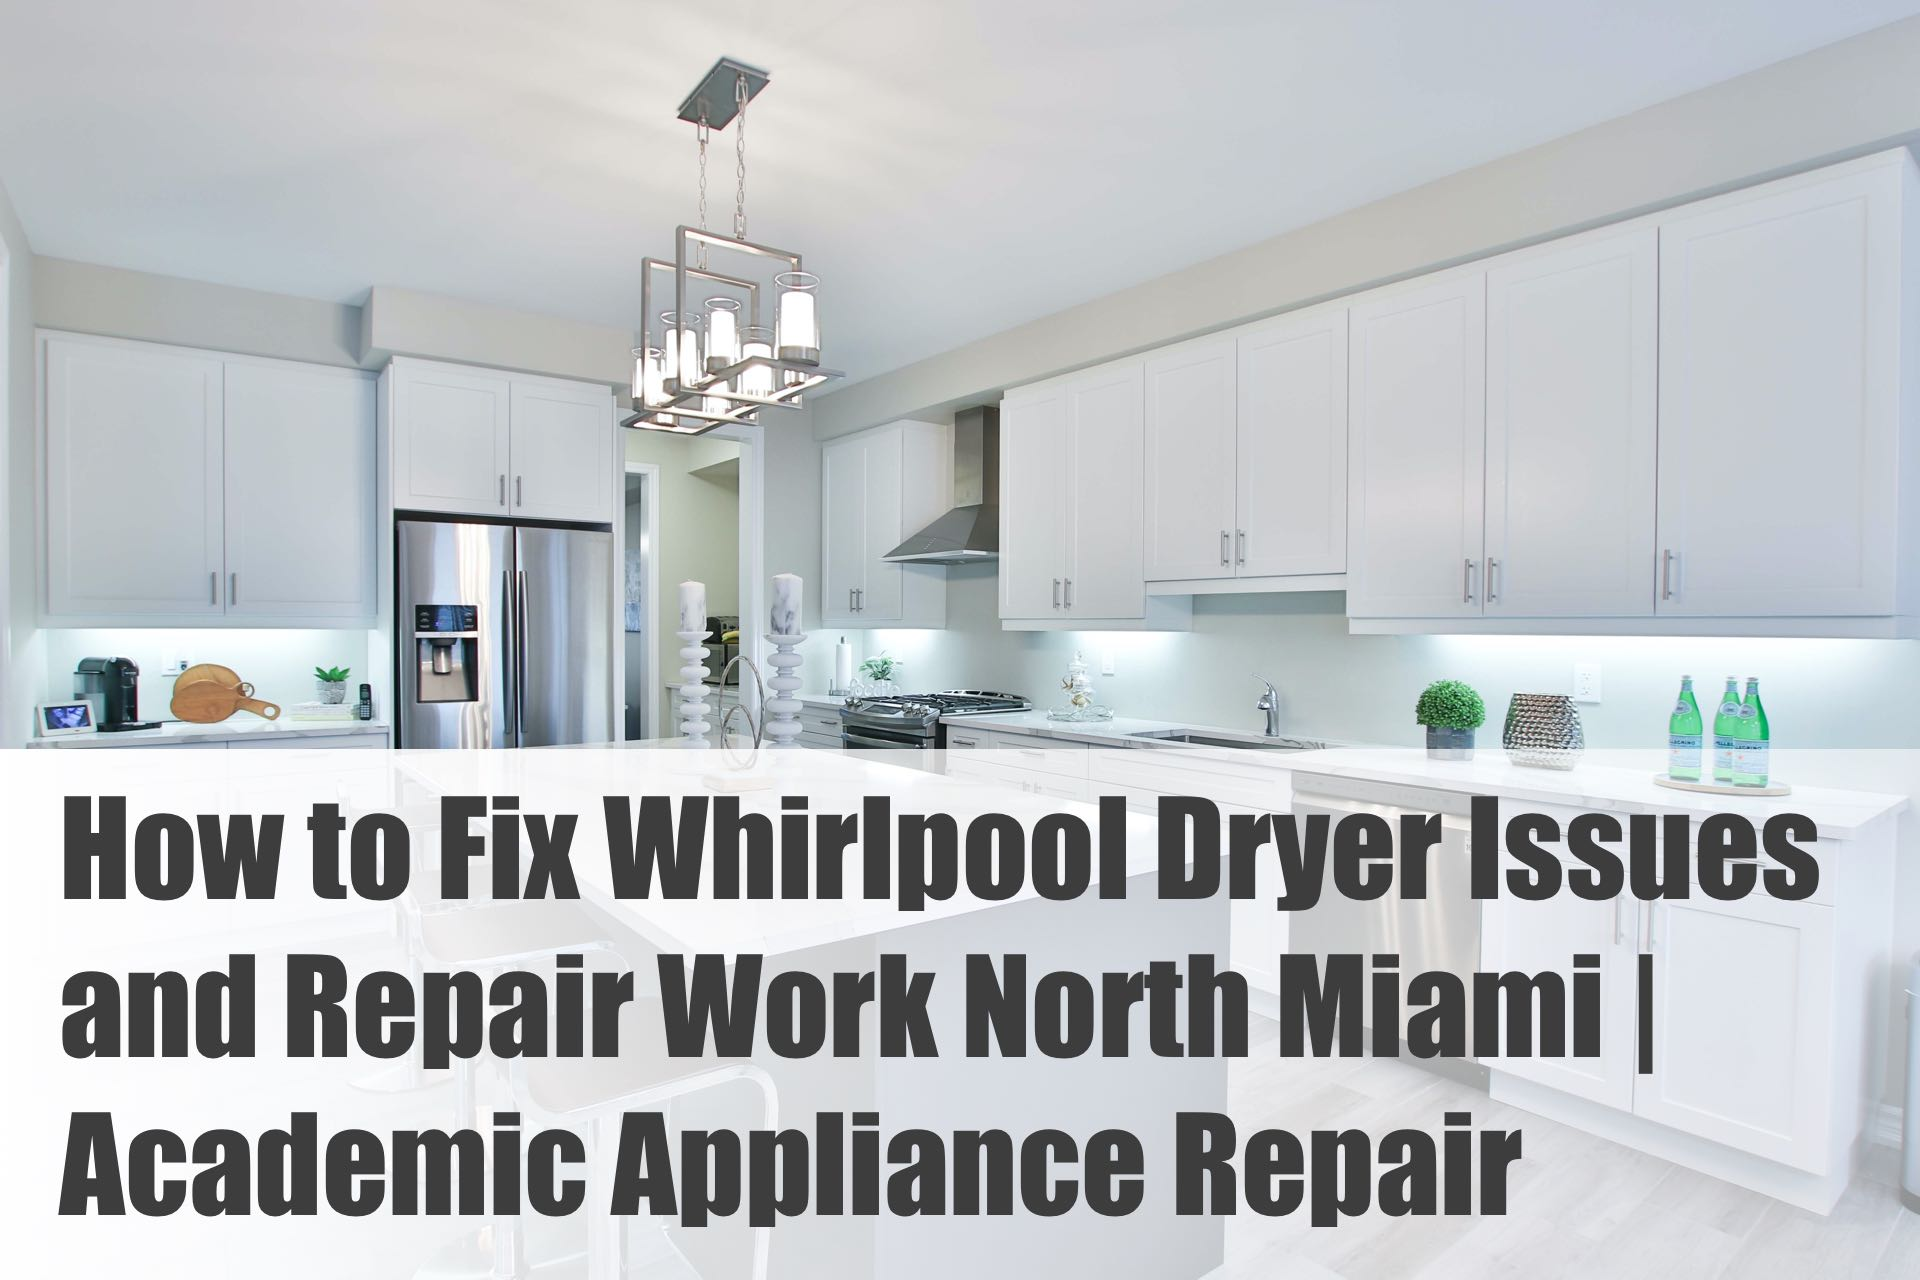 How to Fix Whirlpool Dryer Issues and Repair Work North Miami | Academic Appliance Repair